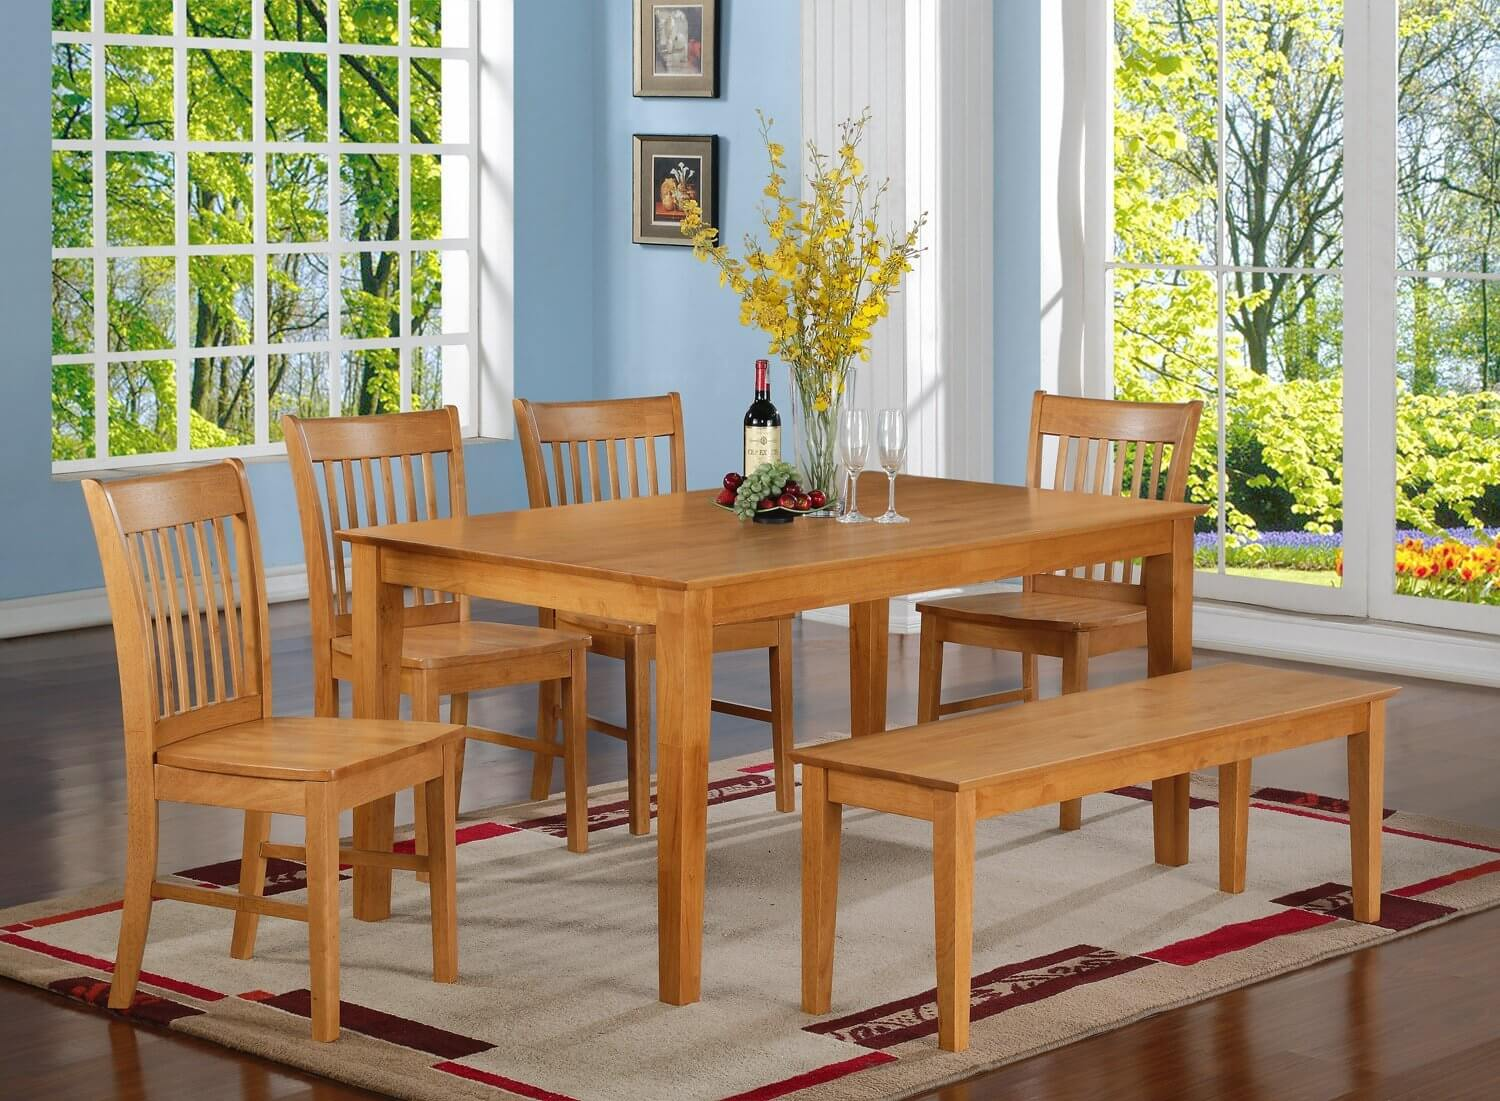 oak dining room sets. Oak Finish Six Piece Bench-style Dining Room Set With Large Rectangle Table. It\u0027s Sets M